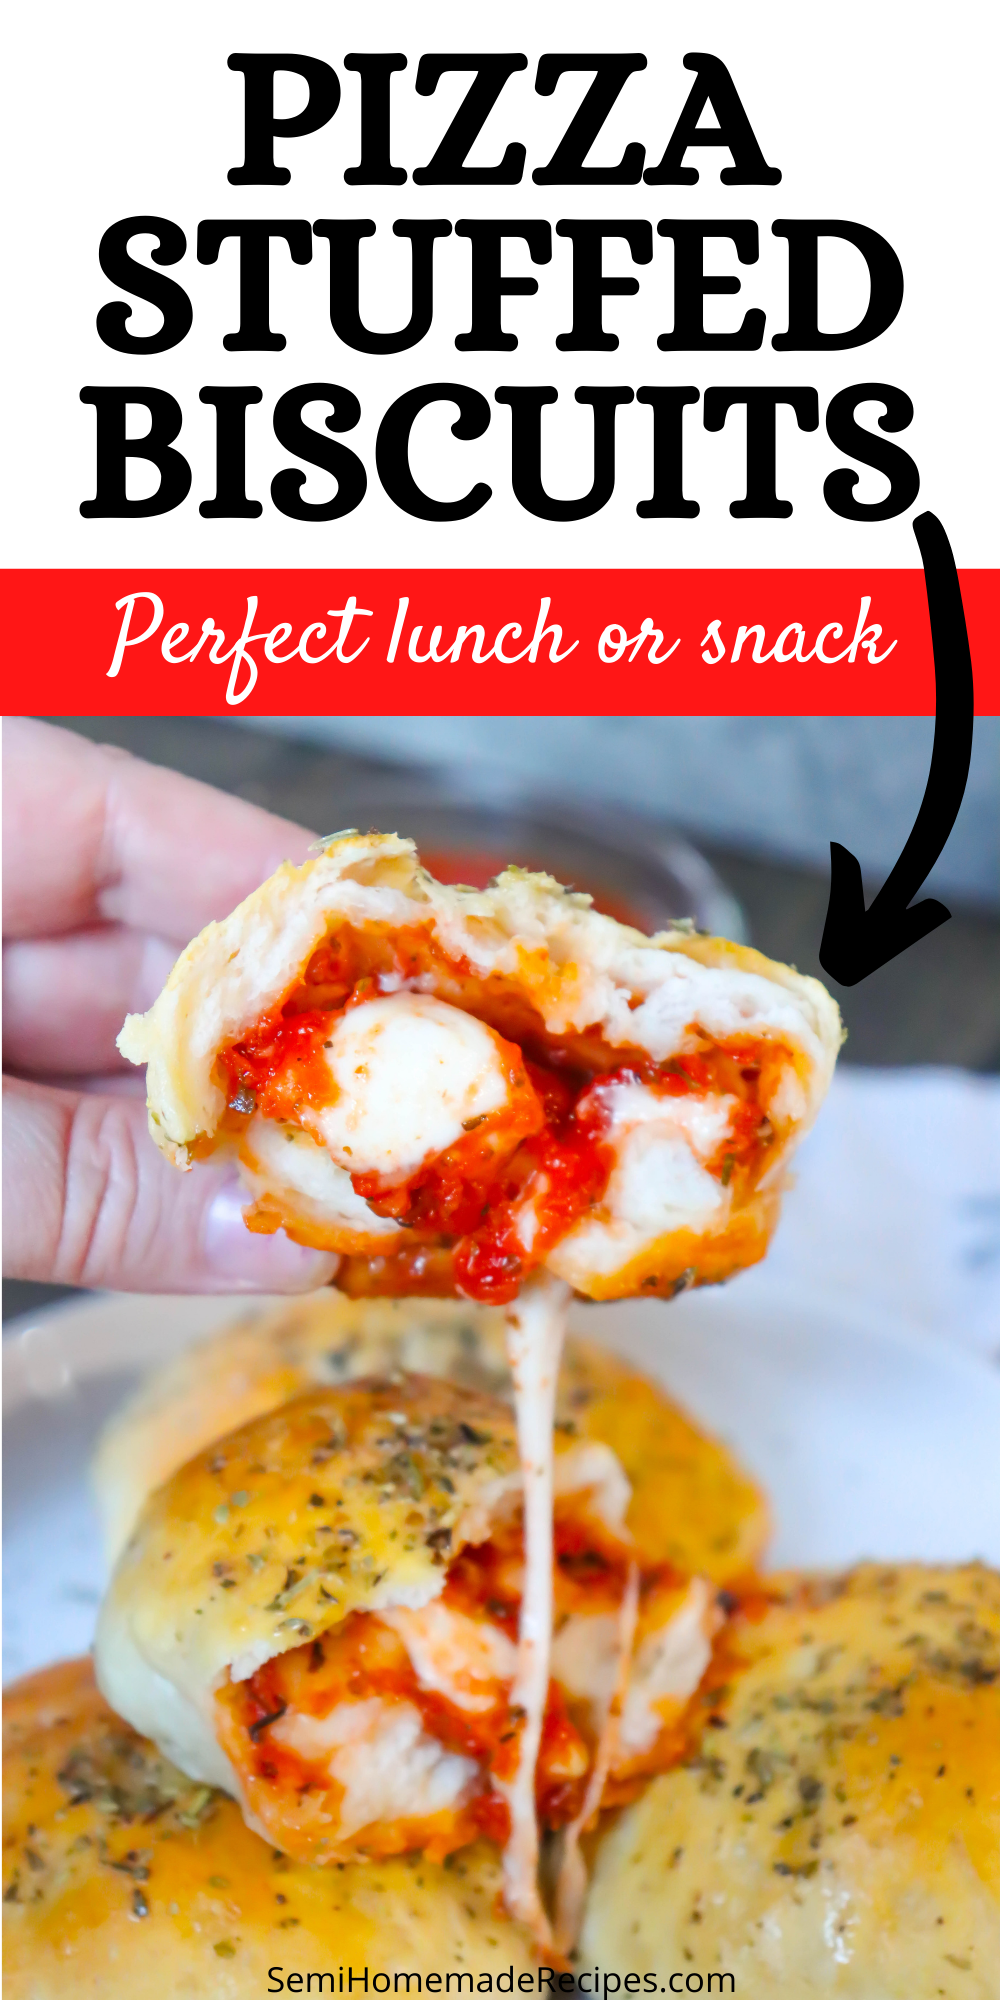 Great for an easy lunch or dinner, these Pizza Stuffed Biscuits are ready in less than 30 minutes! Normallypacked with pizza sauce, fresh mozzarella and Italian seasoning but completely customizable.